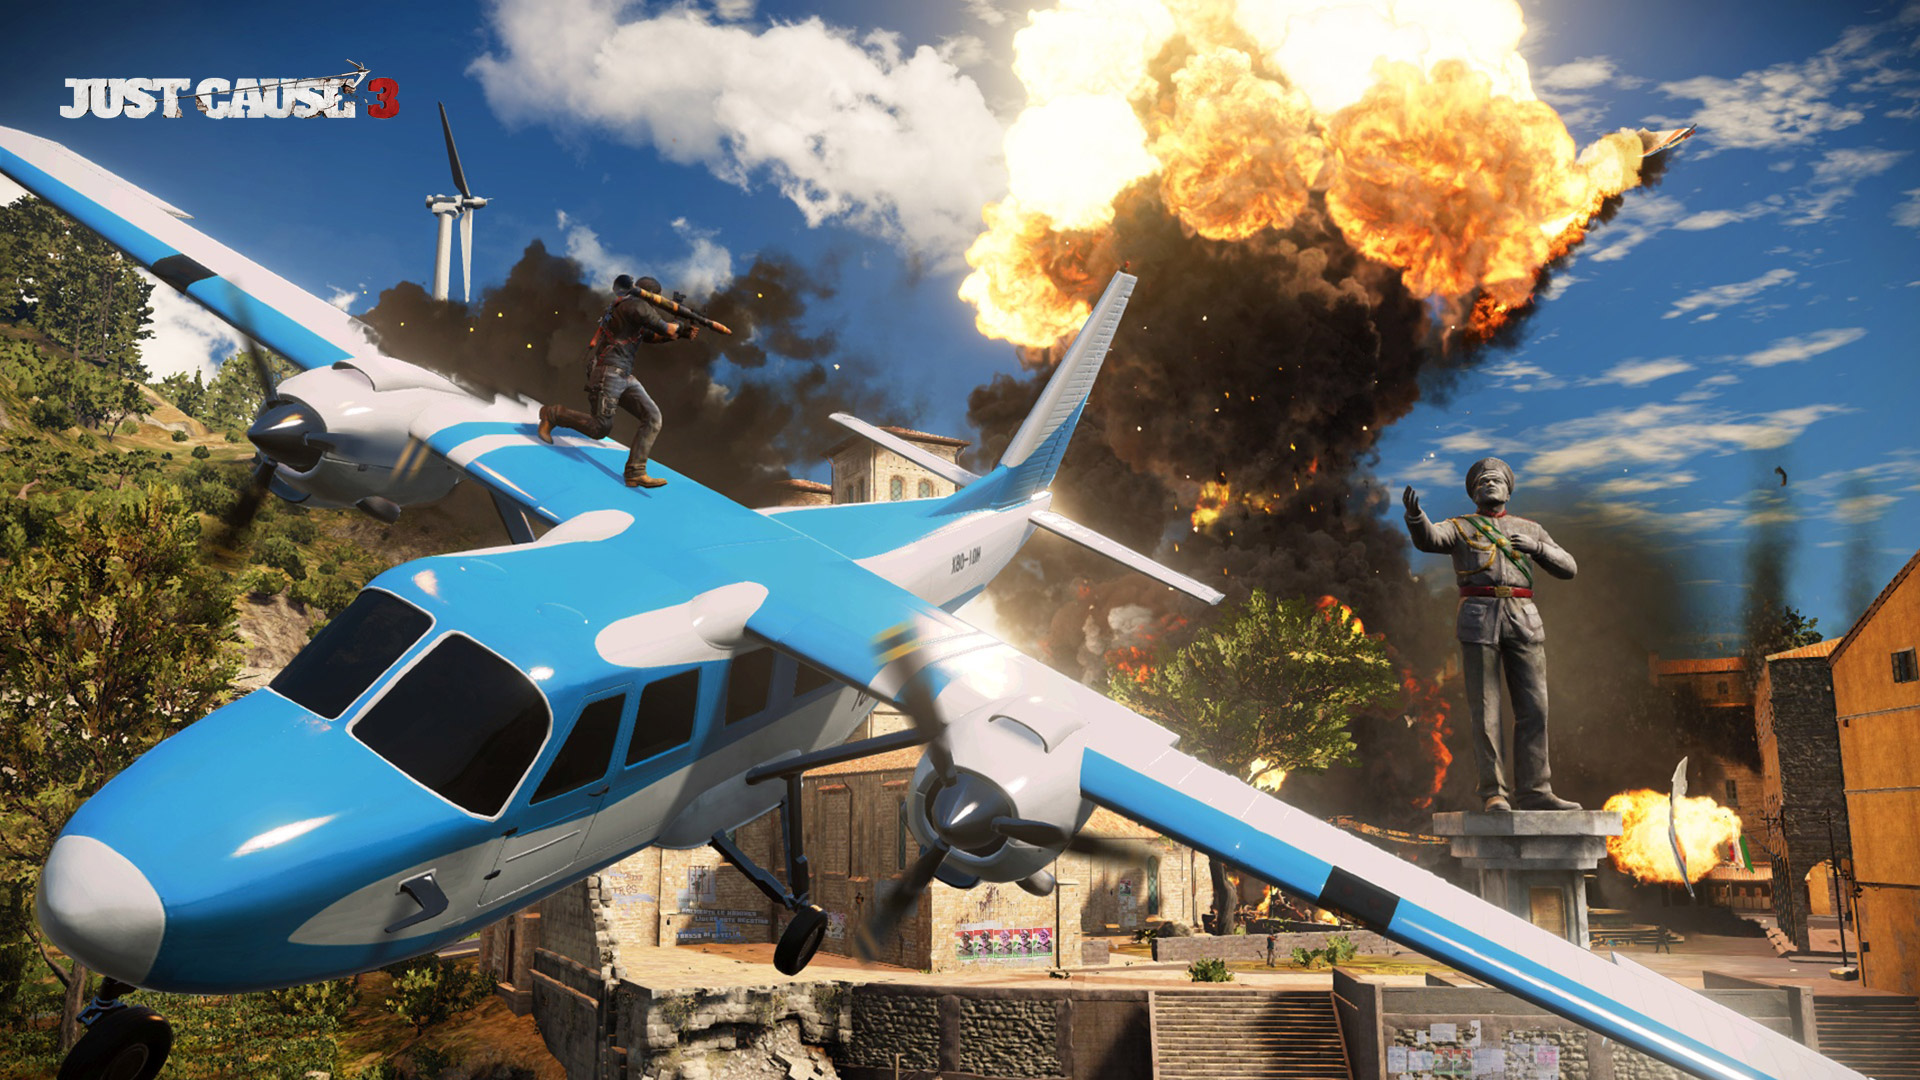 Just Cause 3 wallpaper 5